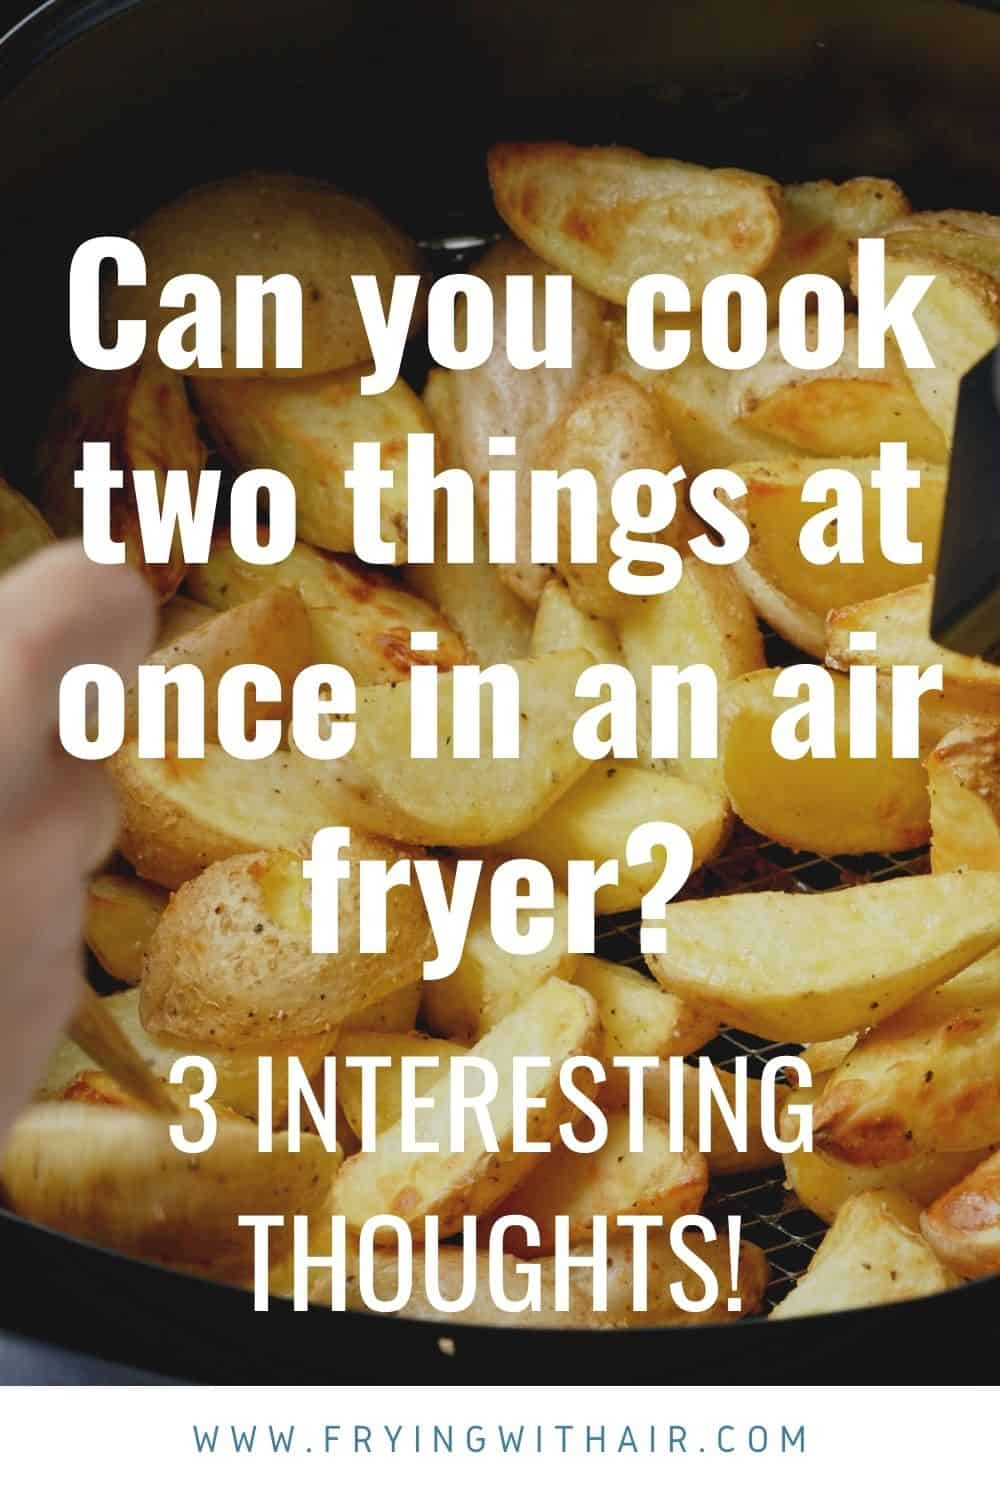 can you cook two things at once in an air fryer